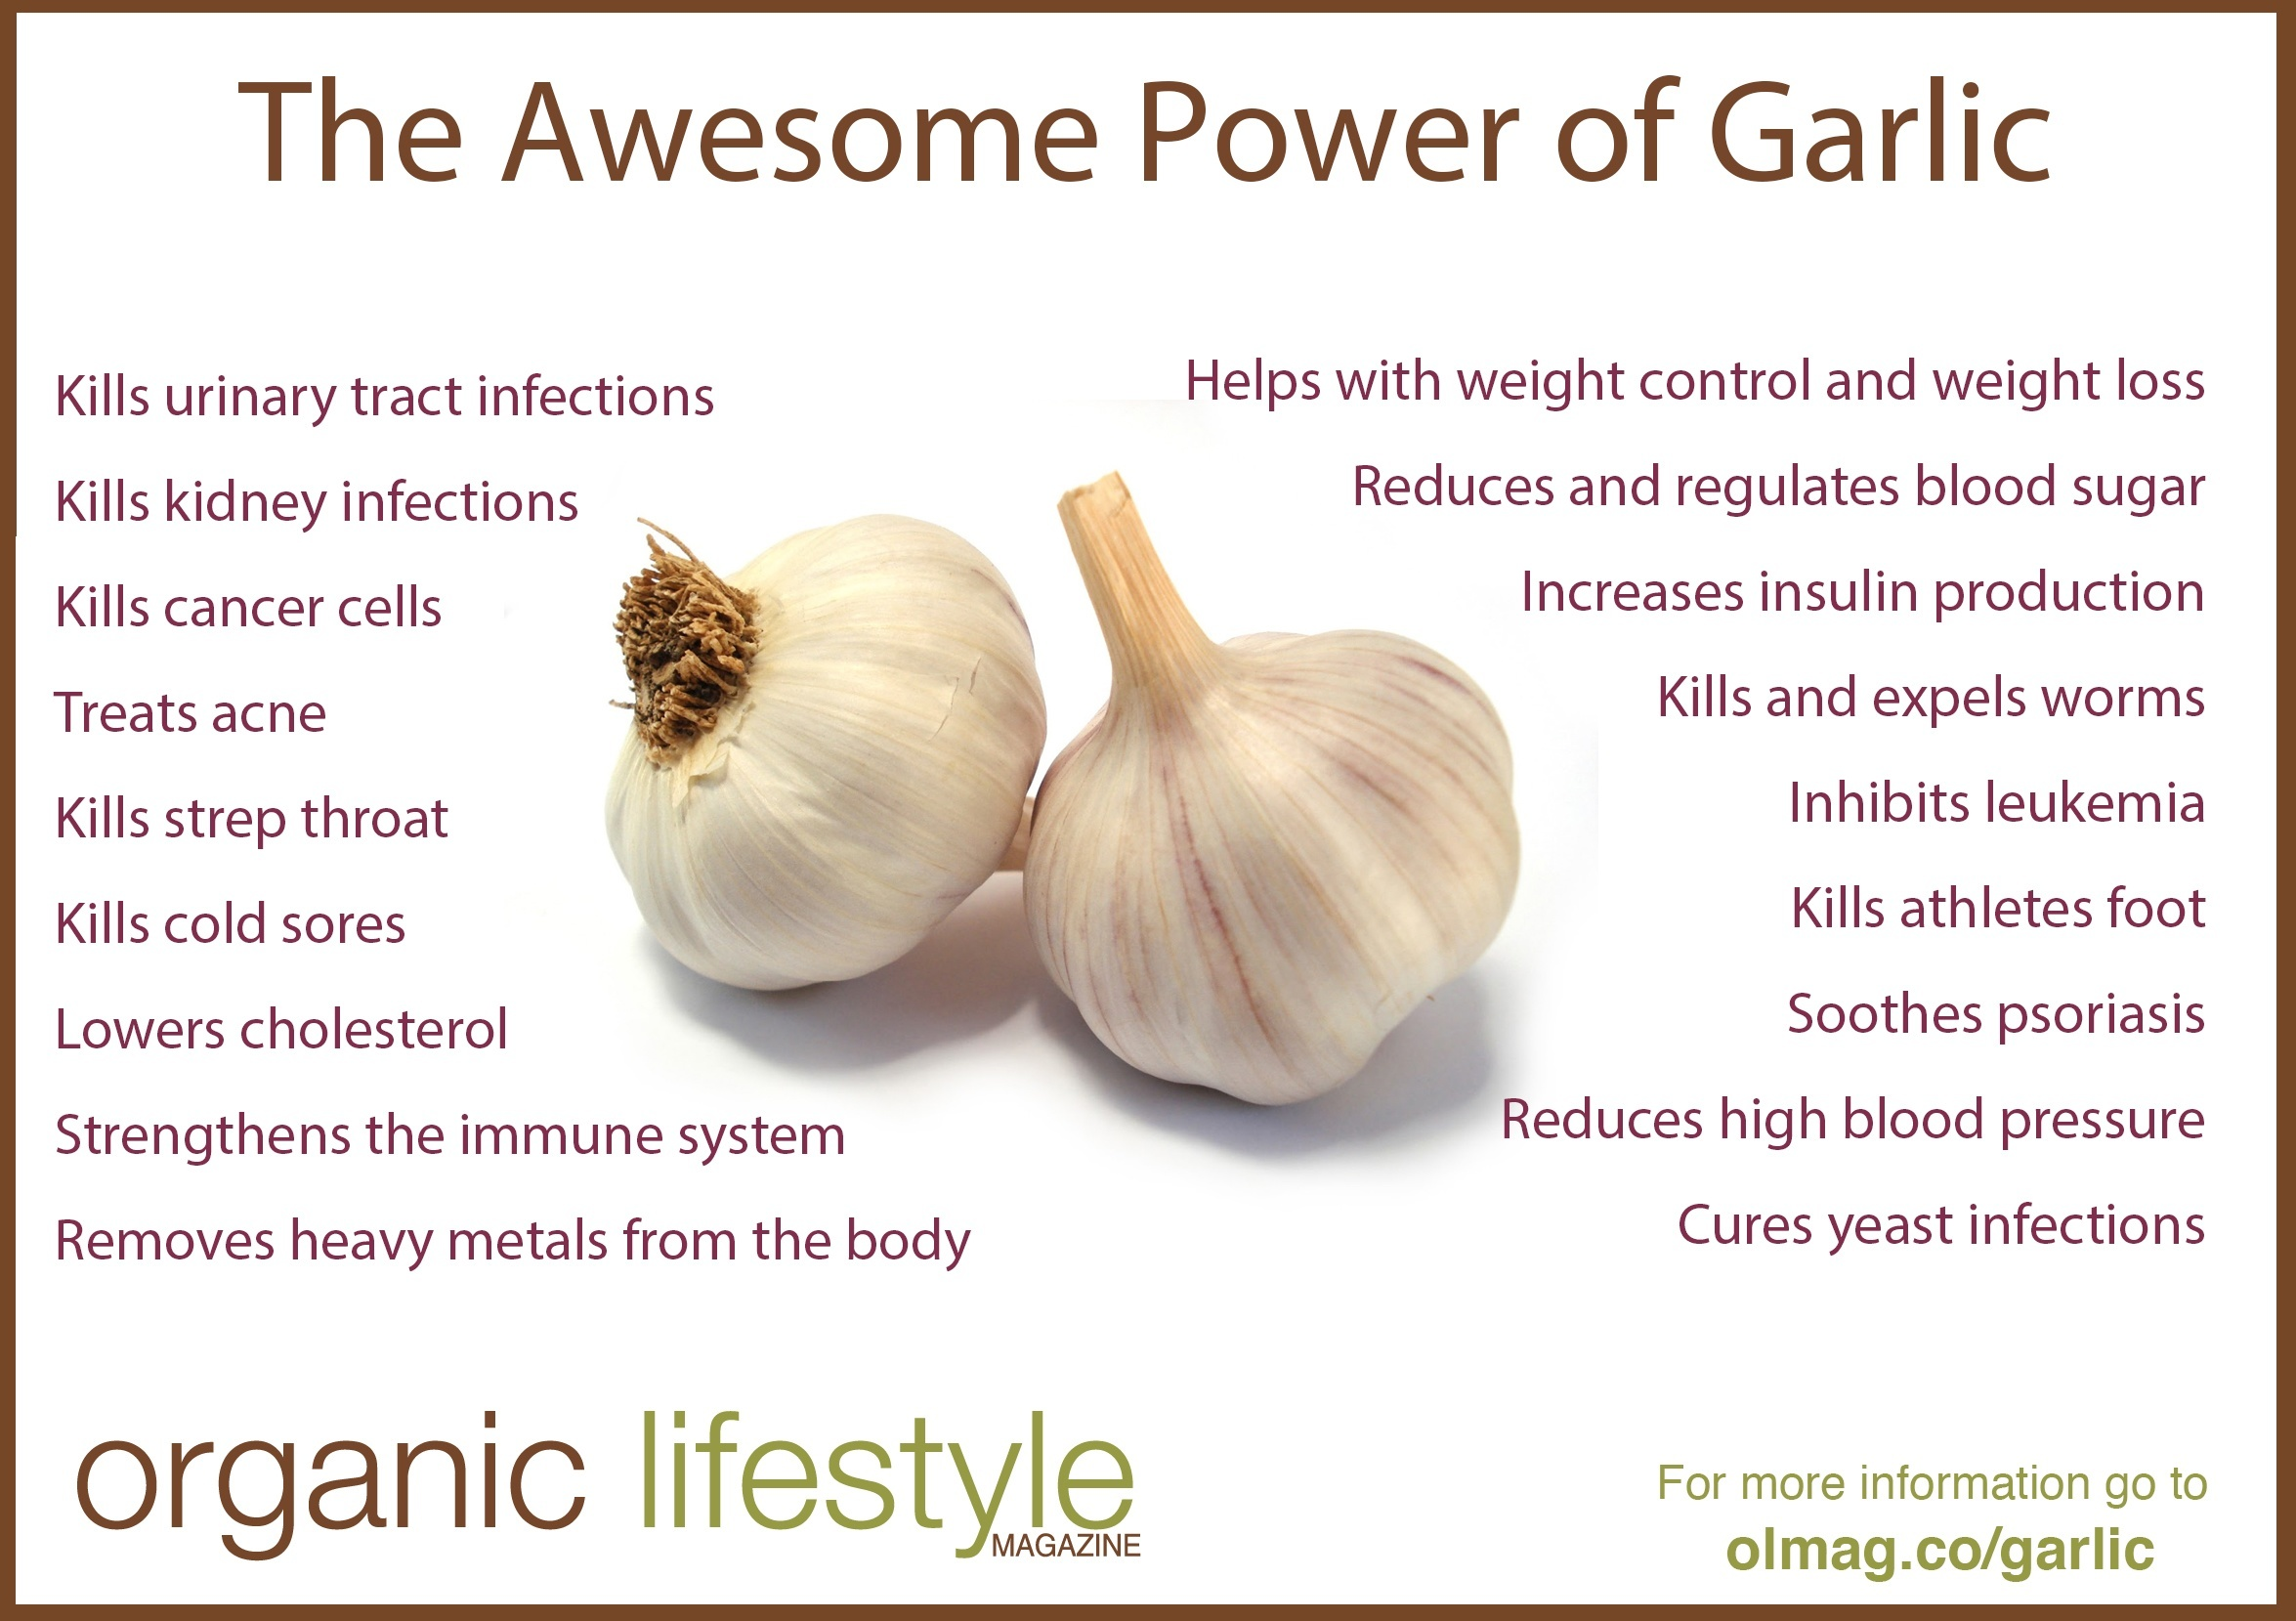 garlic – the most amazing herb on the planet